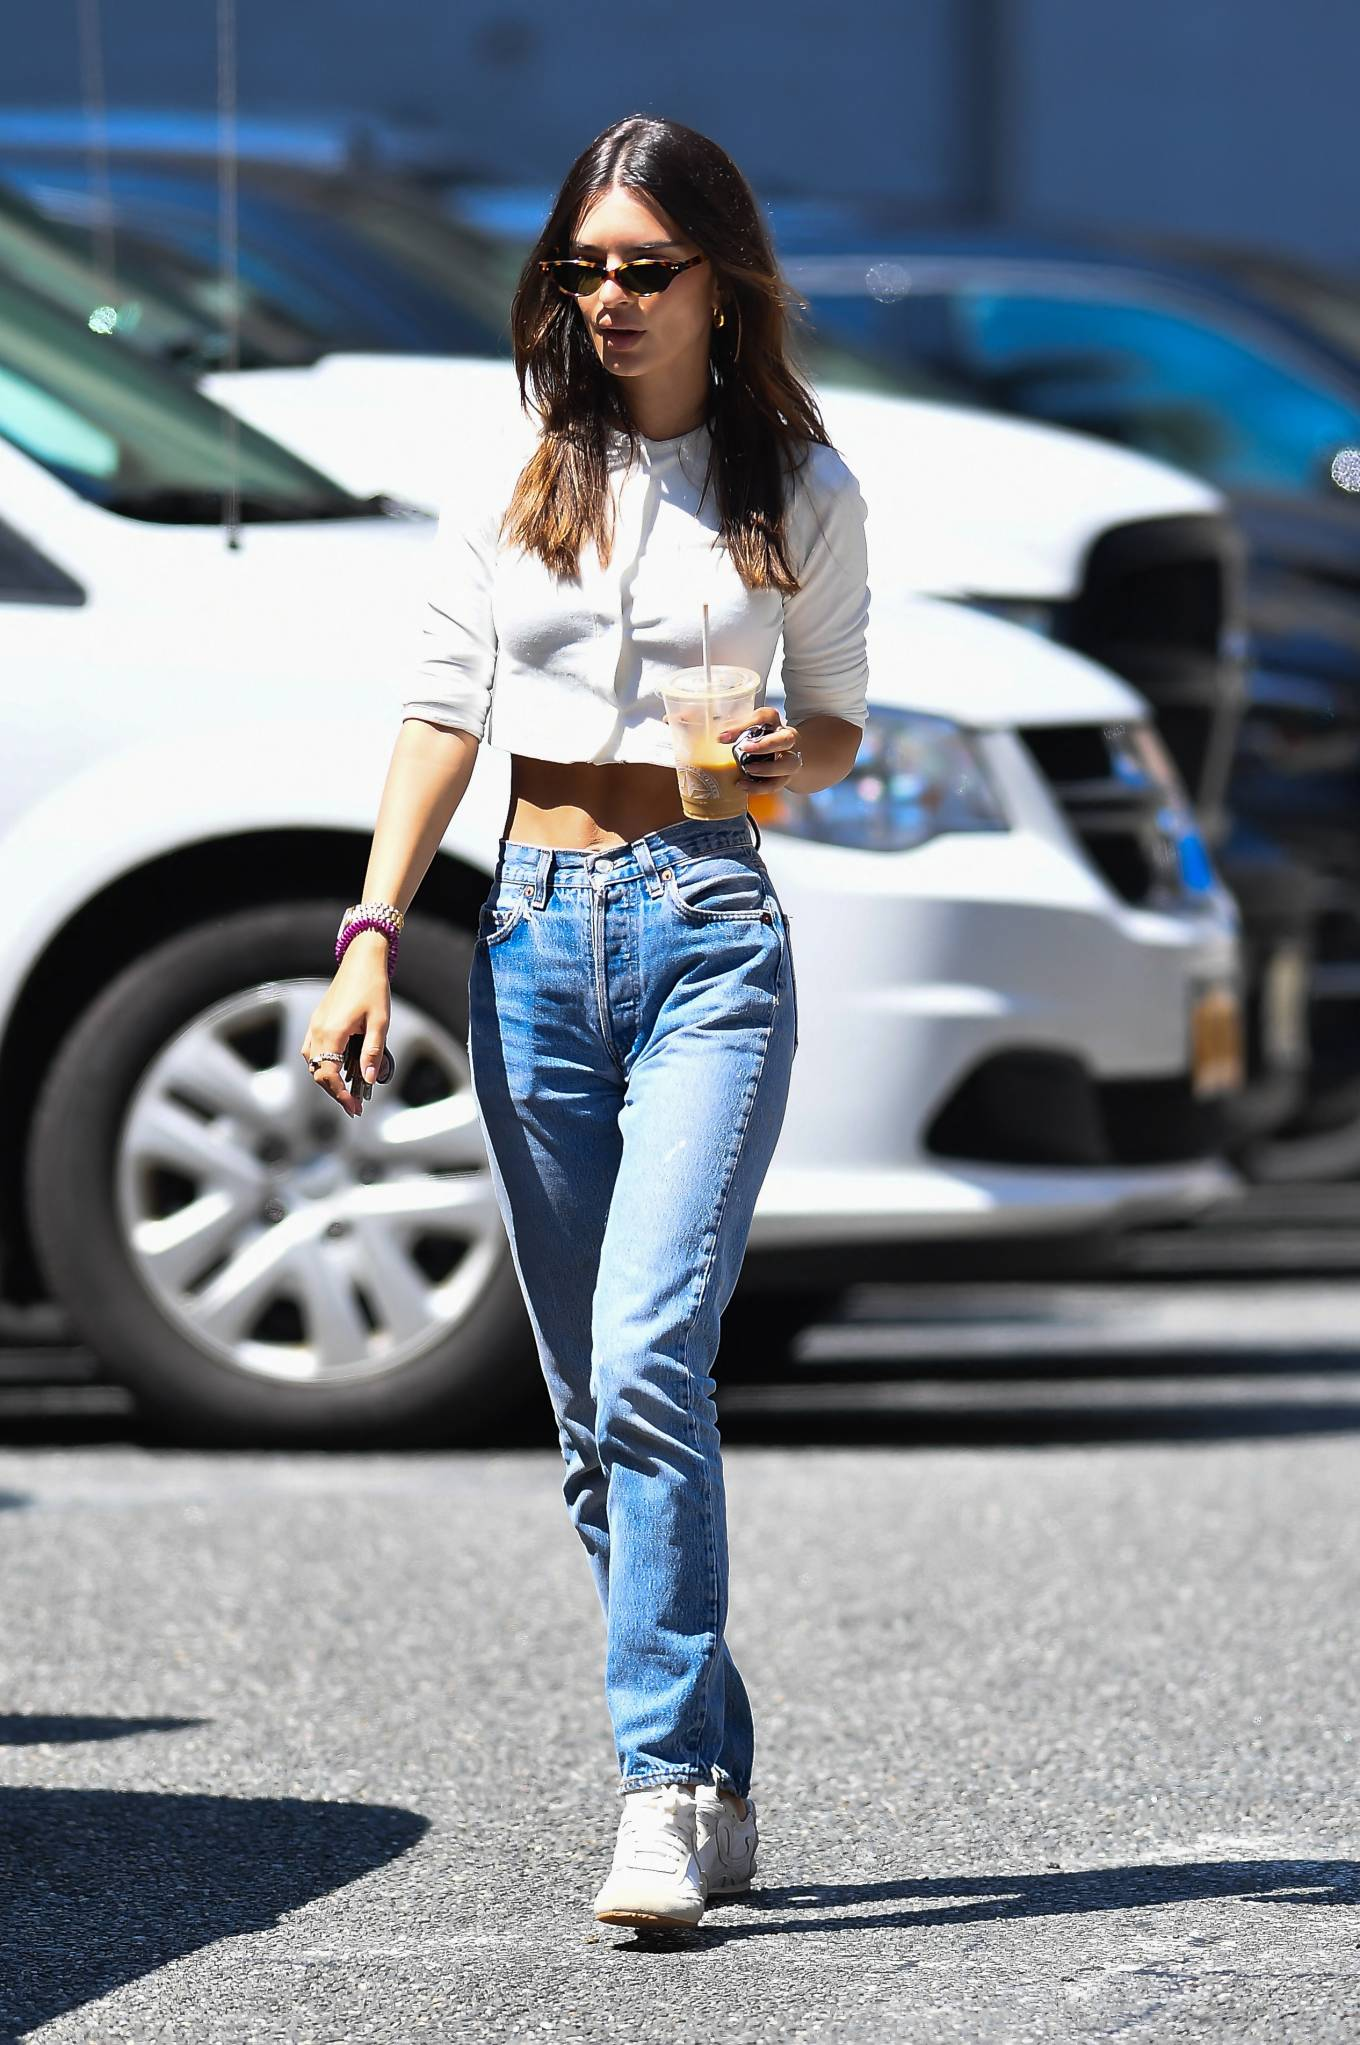 Emily Ratajkowski donning brand logo white off white lace-up sneakers by Loewe with flat heel